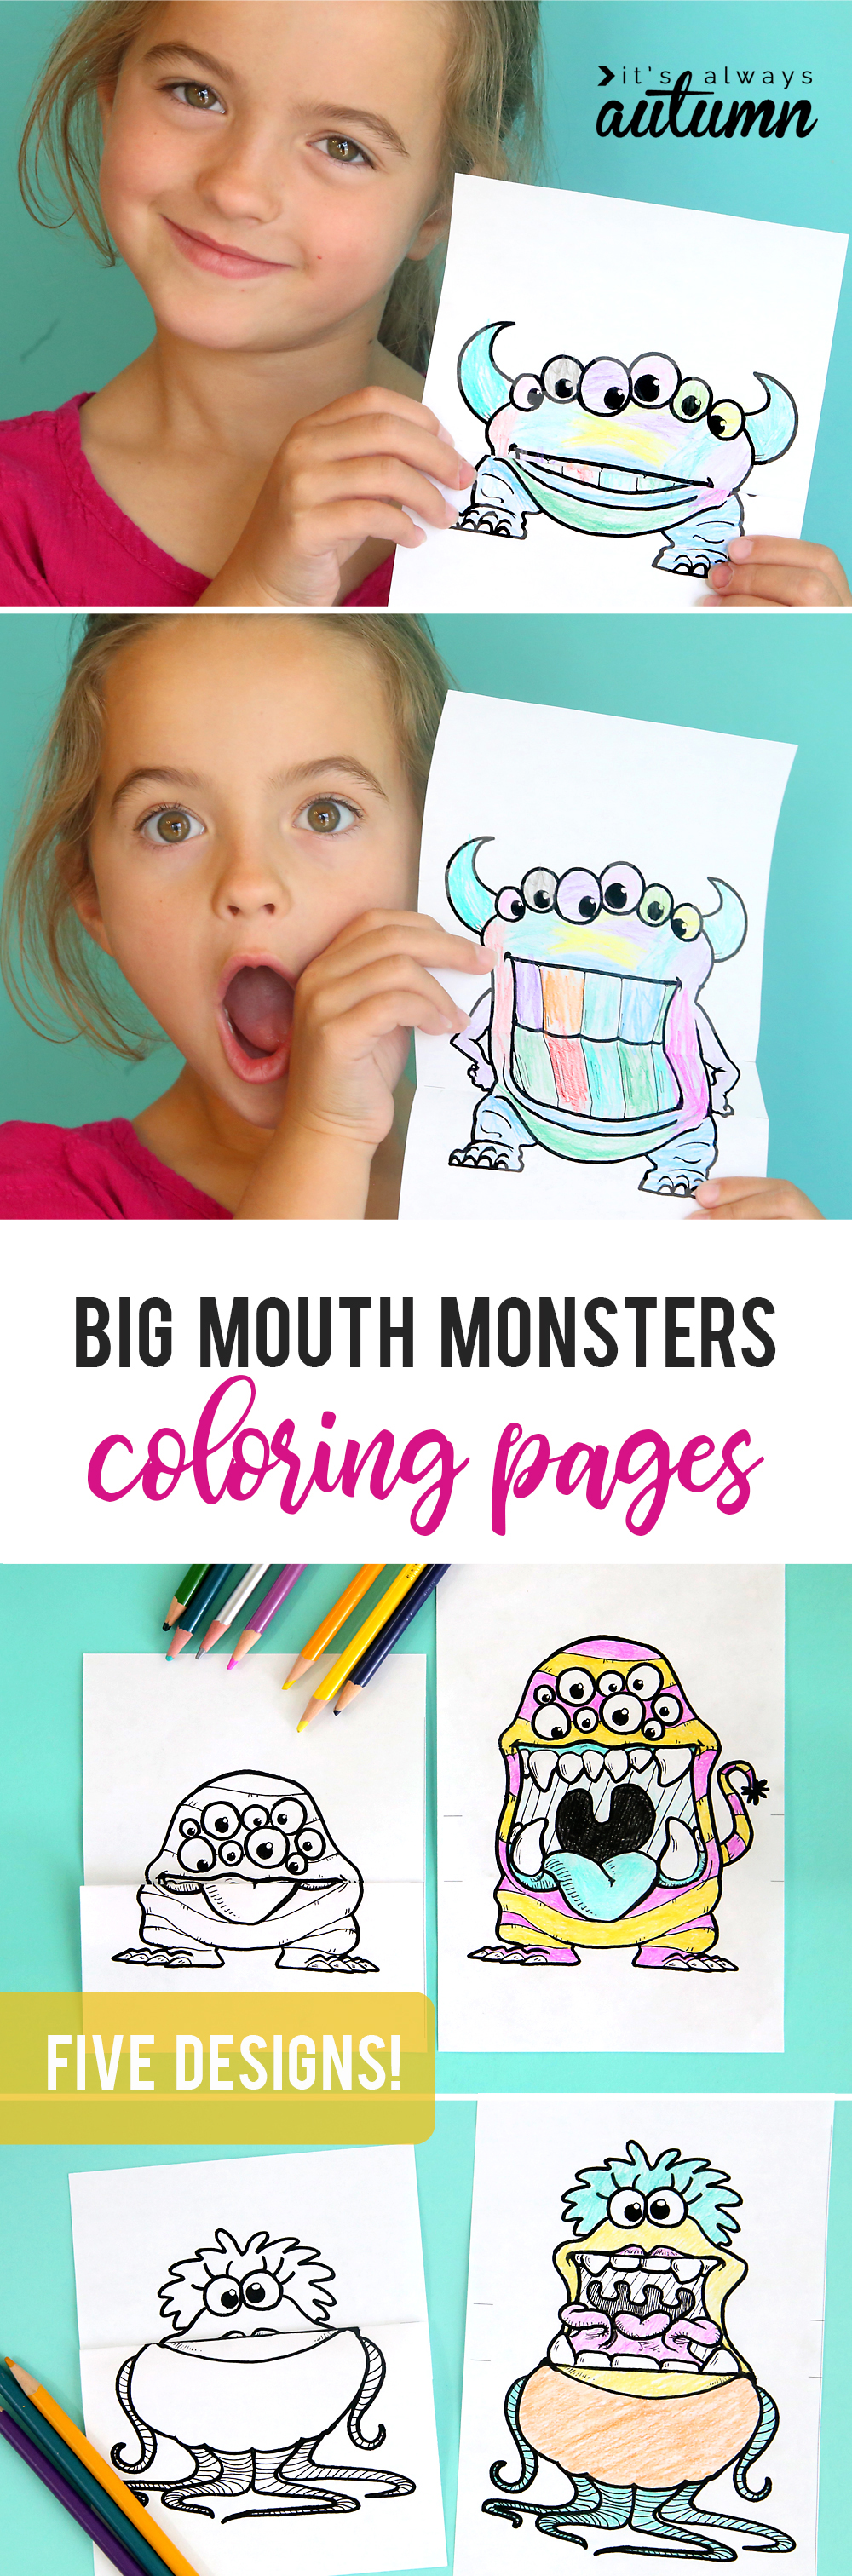 Big mouth monsters coloring pages are so much fun! Color and fold them, then open them up to reveal the giant mouth! These kept my kids busy for hours. Fun, free, easy activity for kids.